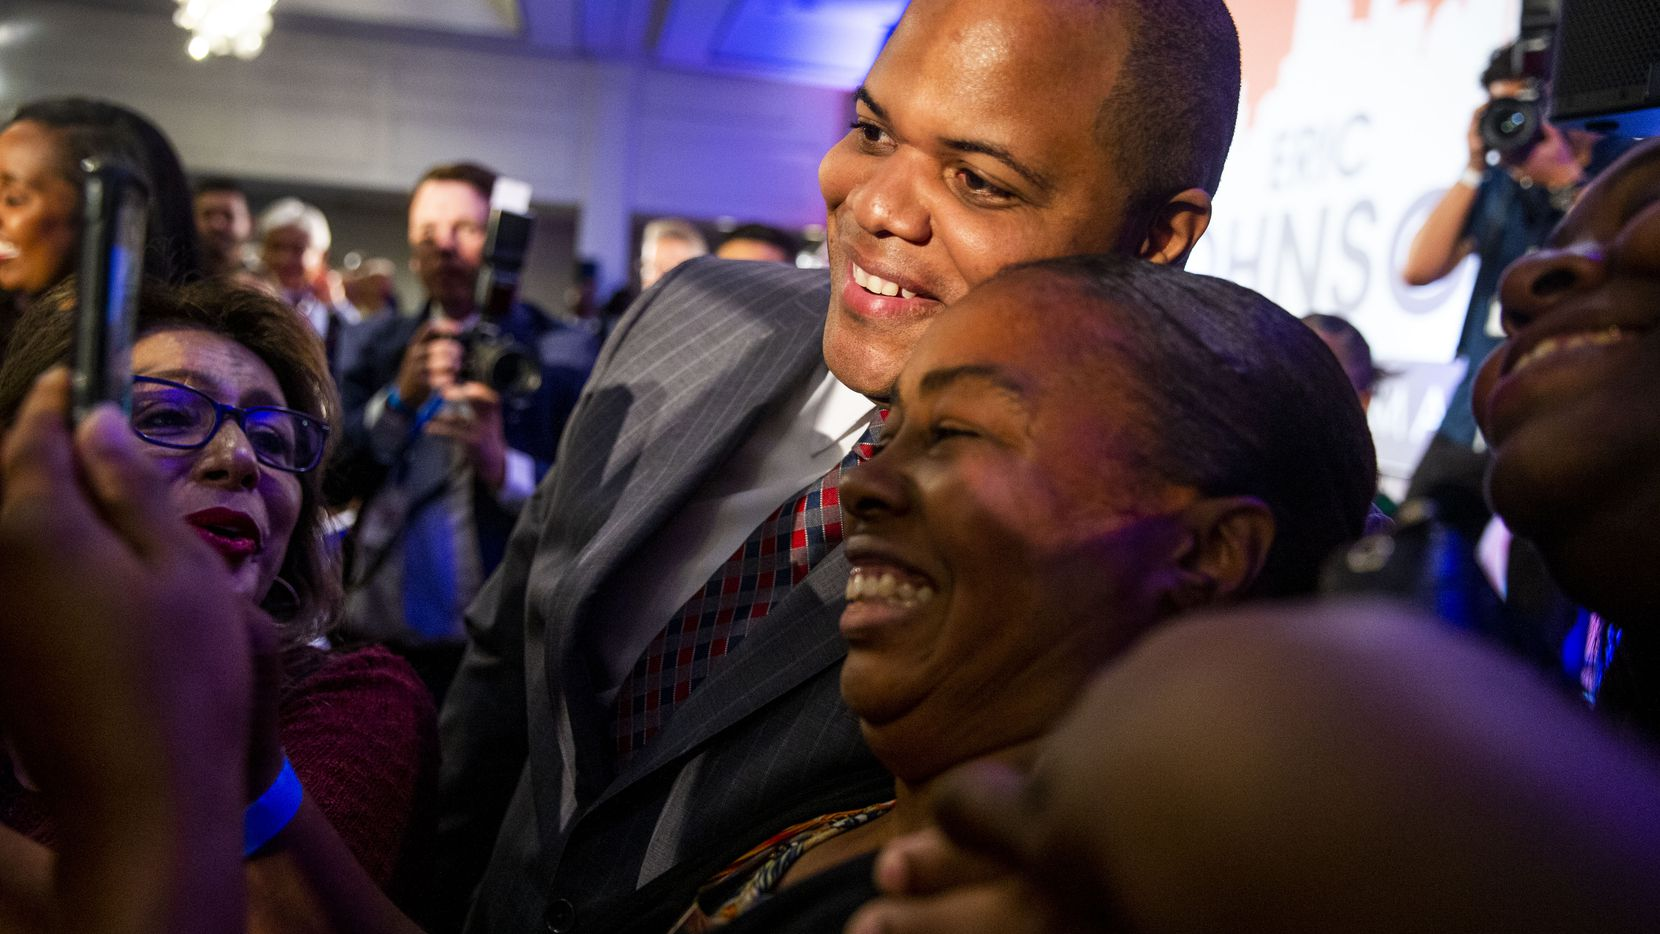 Mayor-Elect Eric Johnson takes picture with supporters after giving remarks during his victory party at Fairmont Dallas on Saturday, June 8, 2019.